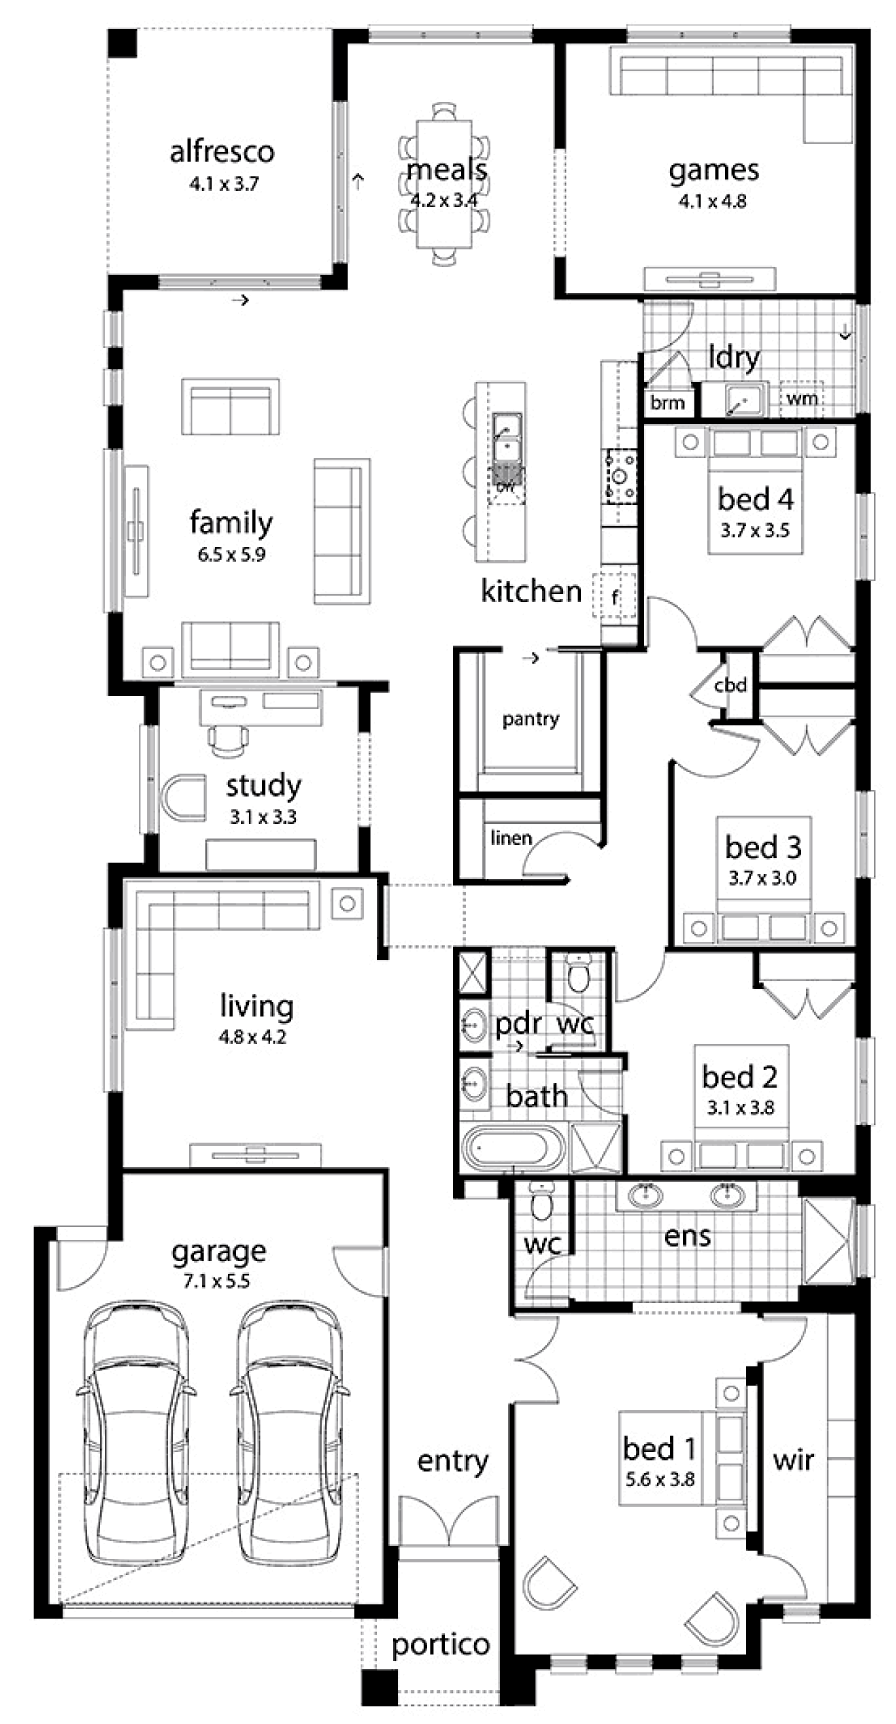 3 Bedroom Home Floor Plans likewise 443463894531463844 moreover 62628251041802449 together with Black Horse Kb3589up 3 likewise Pop Floor. on 2 bedroom penthouse plans